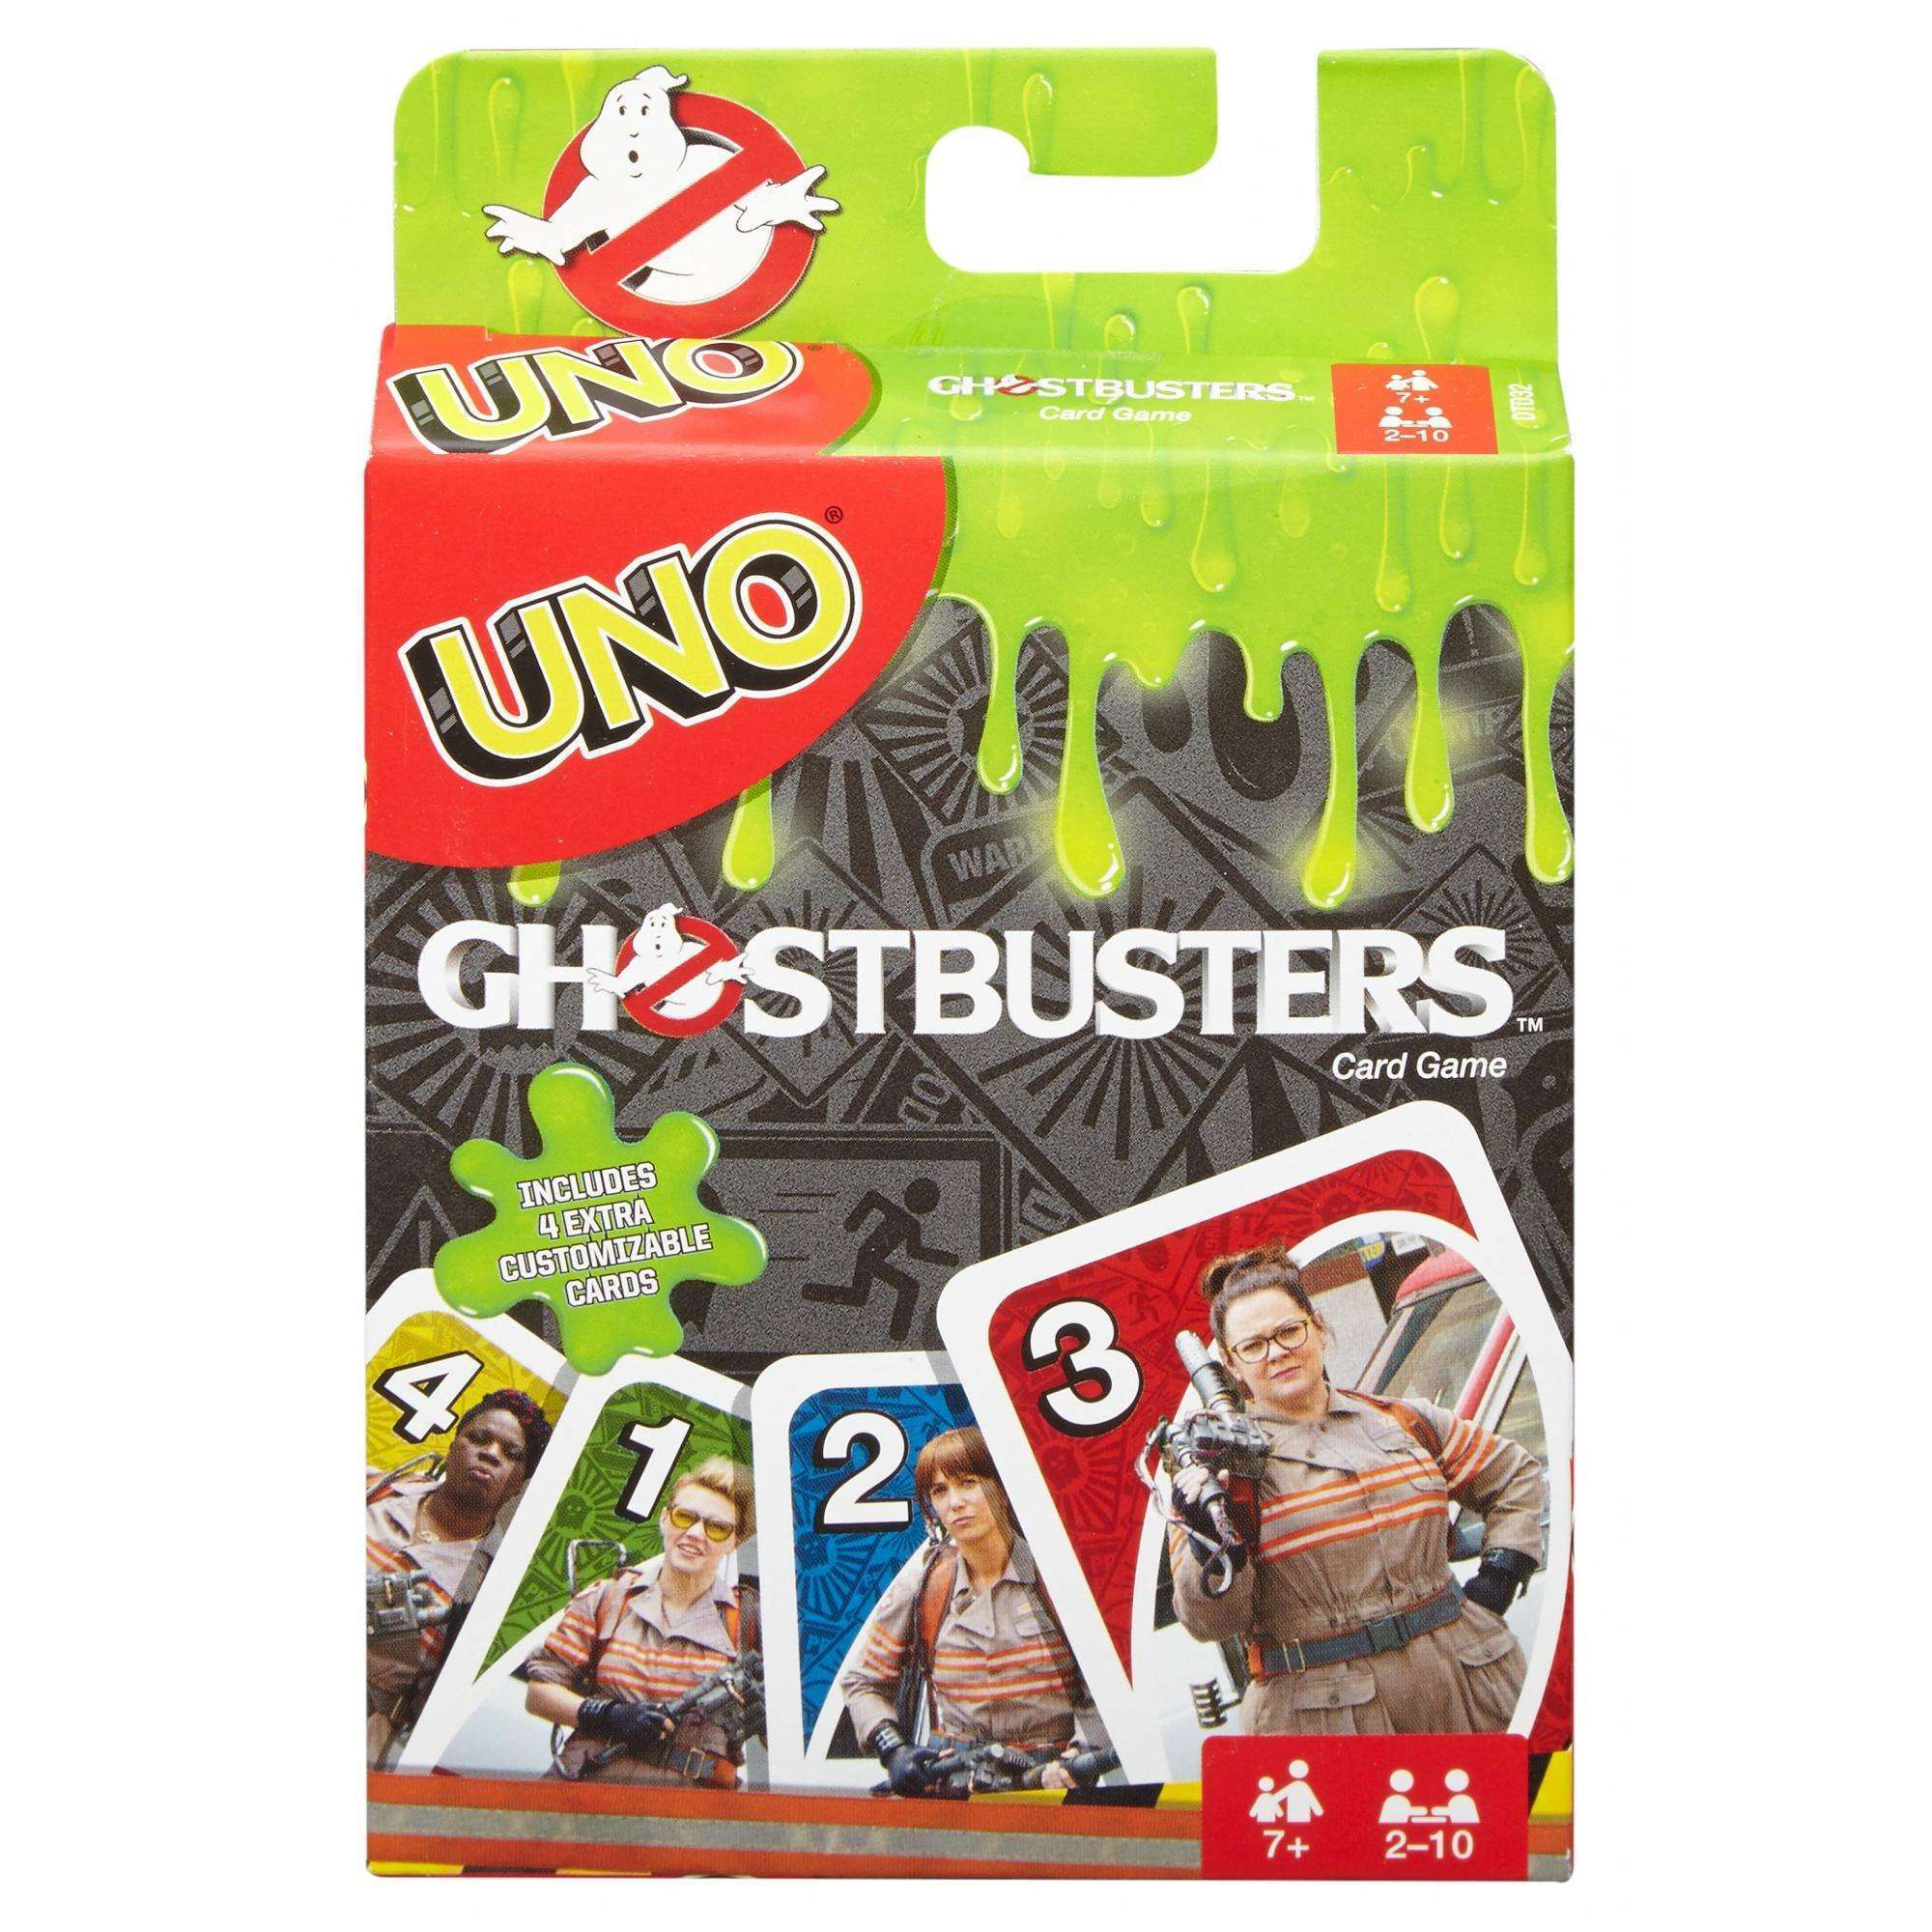 UNO Ghostbusters Theme Card Game for 2-10 Players Ages 7Y+